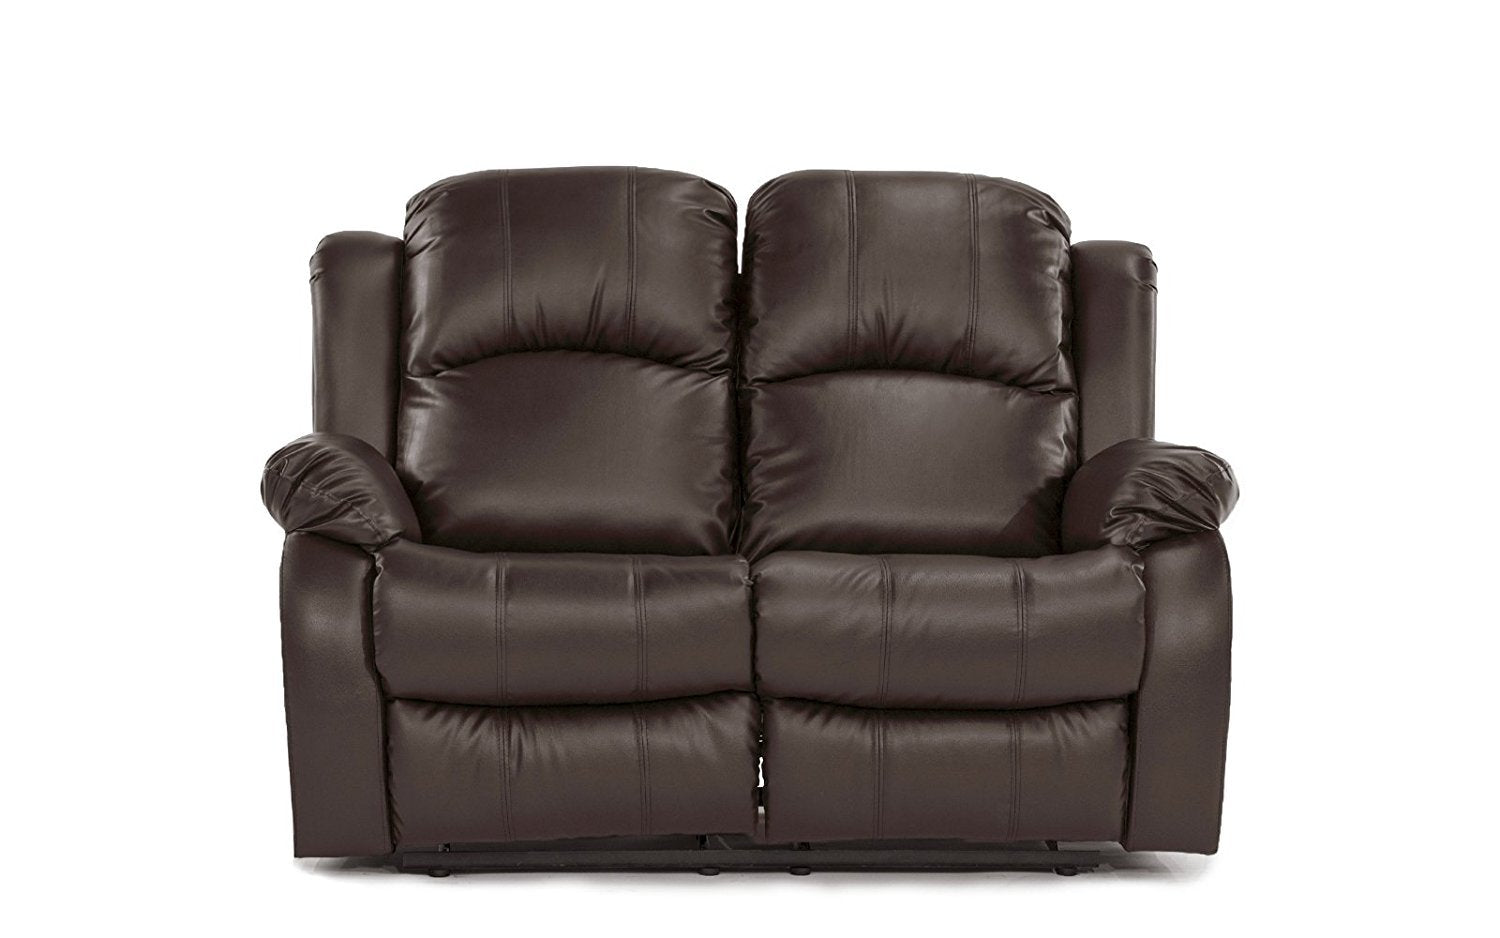 Attirant New Century® Brown Bonded Faux Leather 2 Seater Recliner Chair